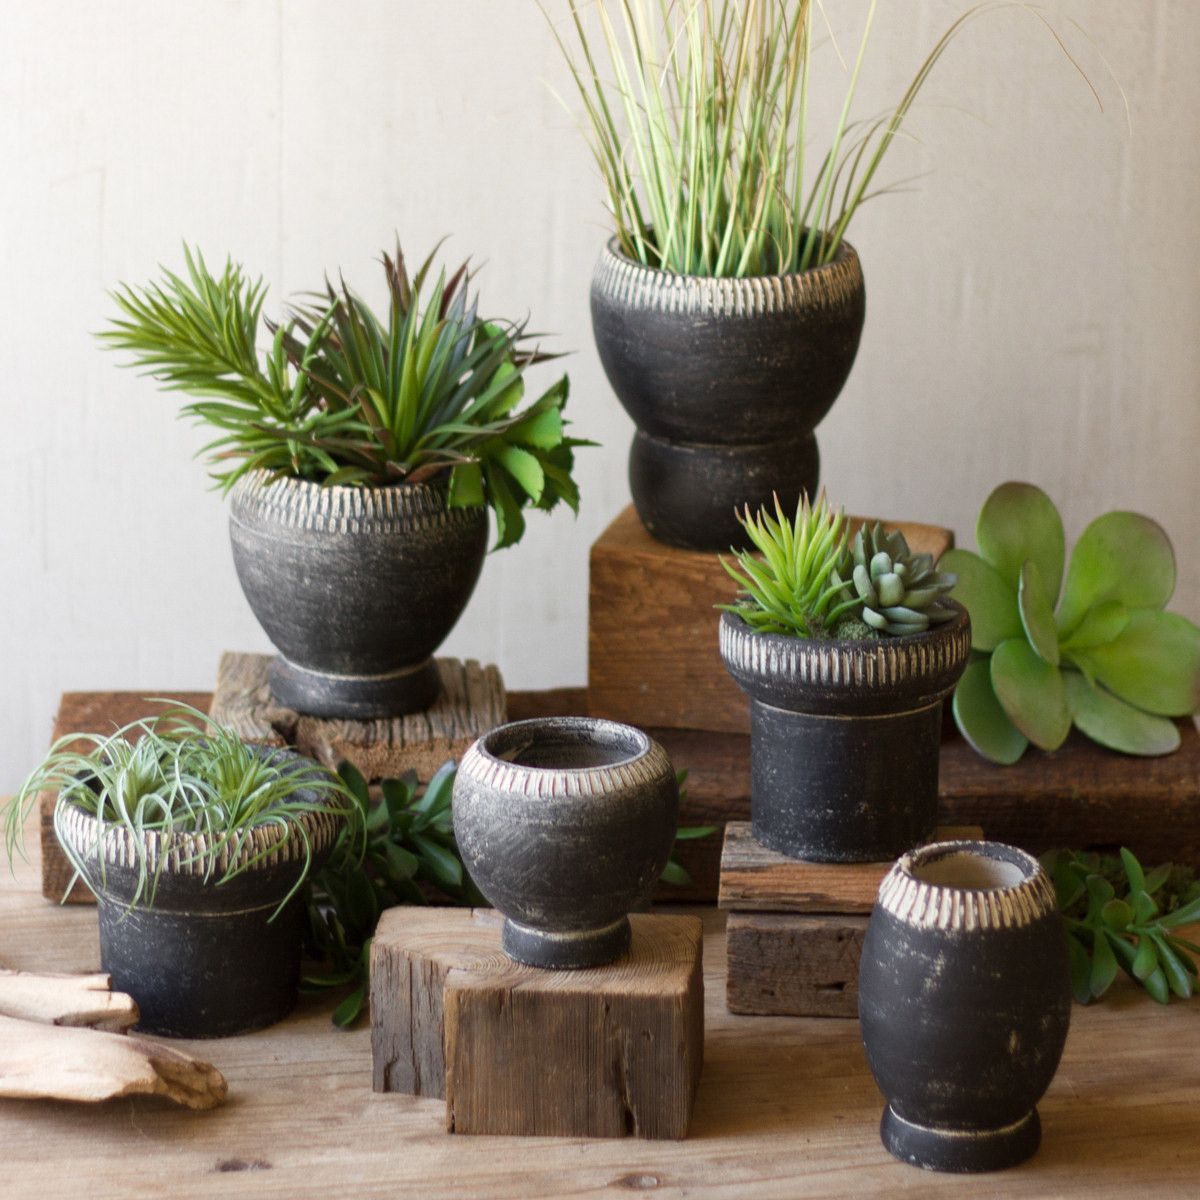 home gardens using pots images for our planters clay diy pinterest on best creative garden herb arizonapottery planter your terracotta vertical